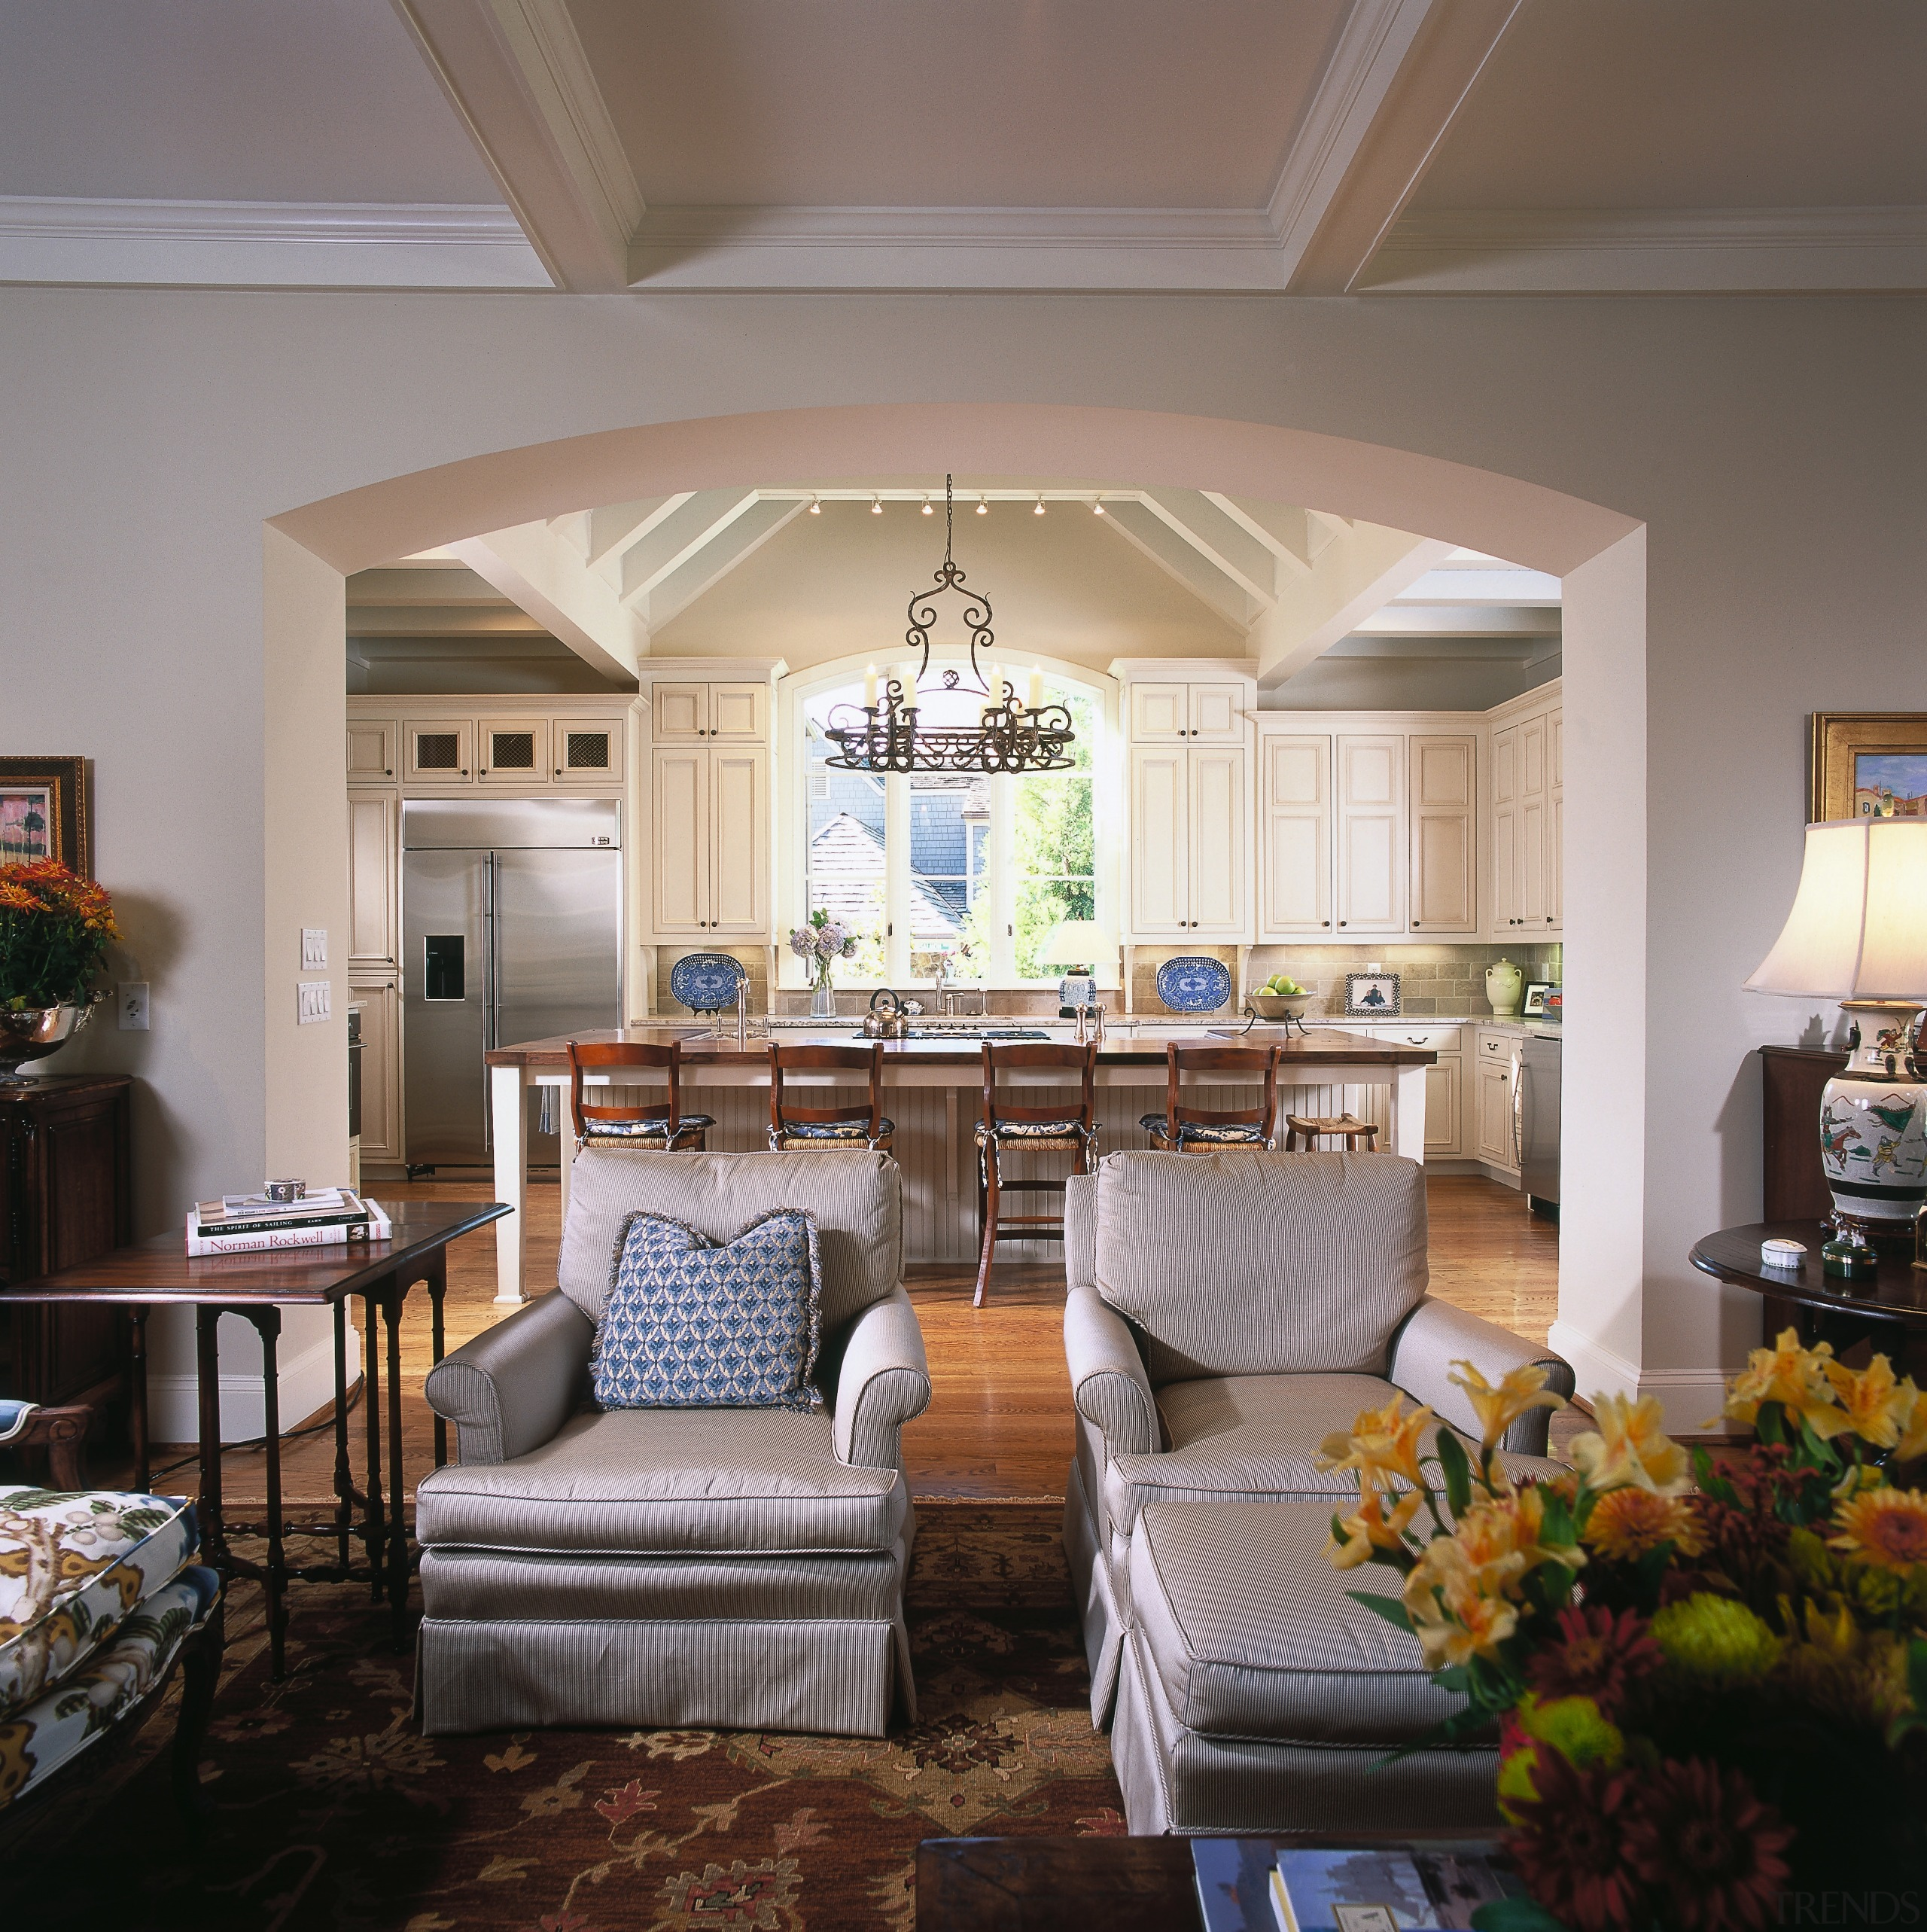 A view of the kitchen from the living ceiling, dining room, home, interior design, living room, real estate, room, gray